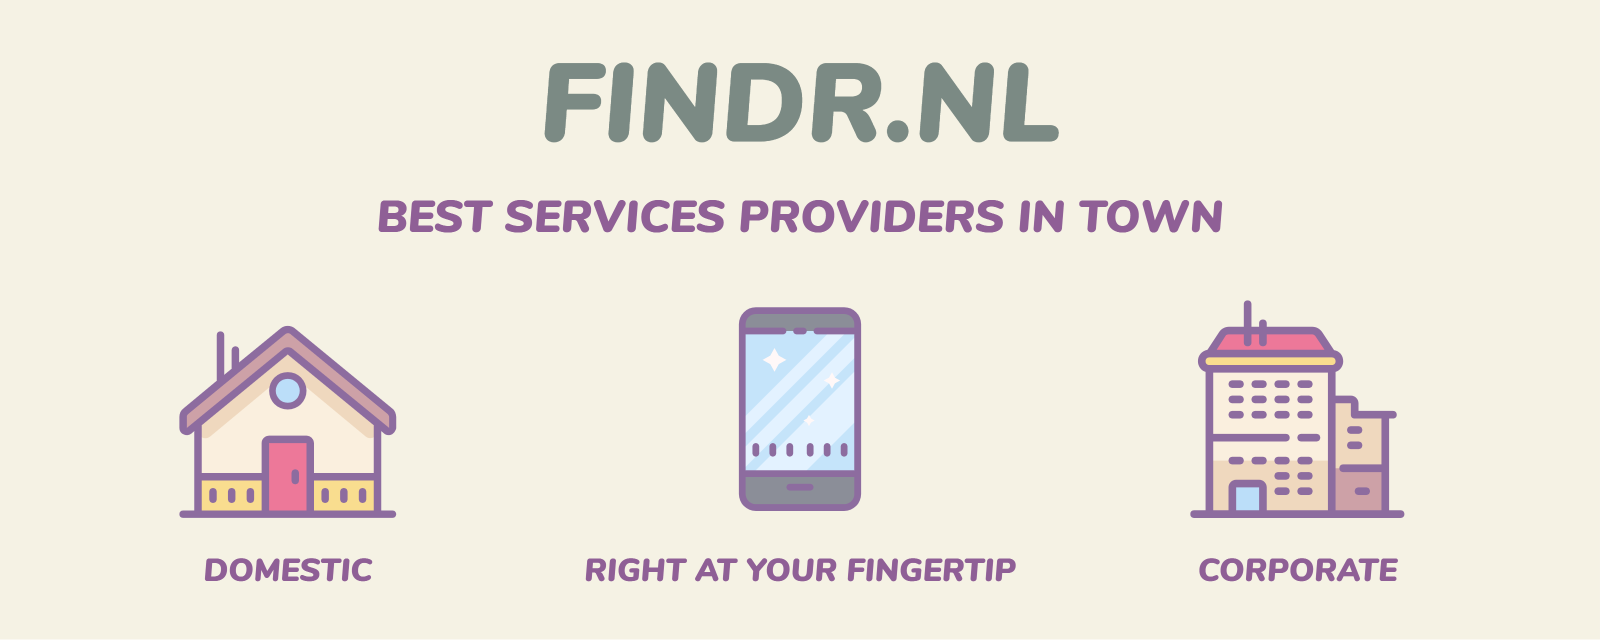 Best services providers in town